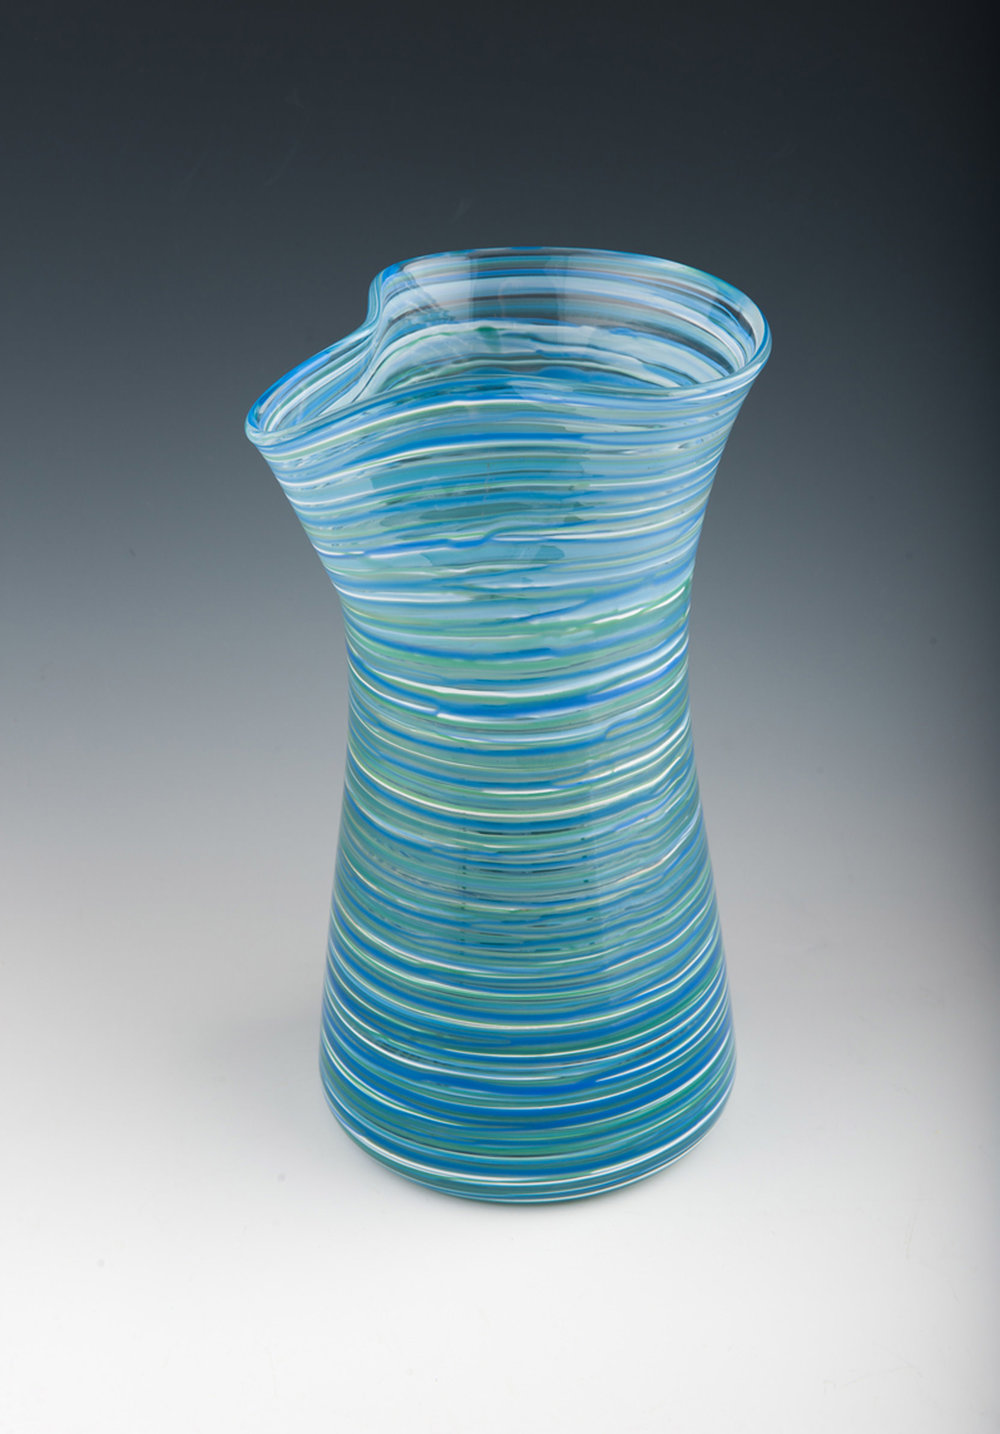 Hoops Carafe seen here in Sea Stripe.